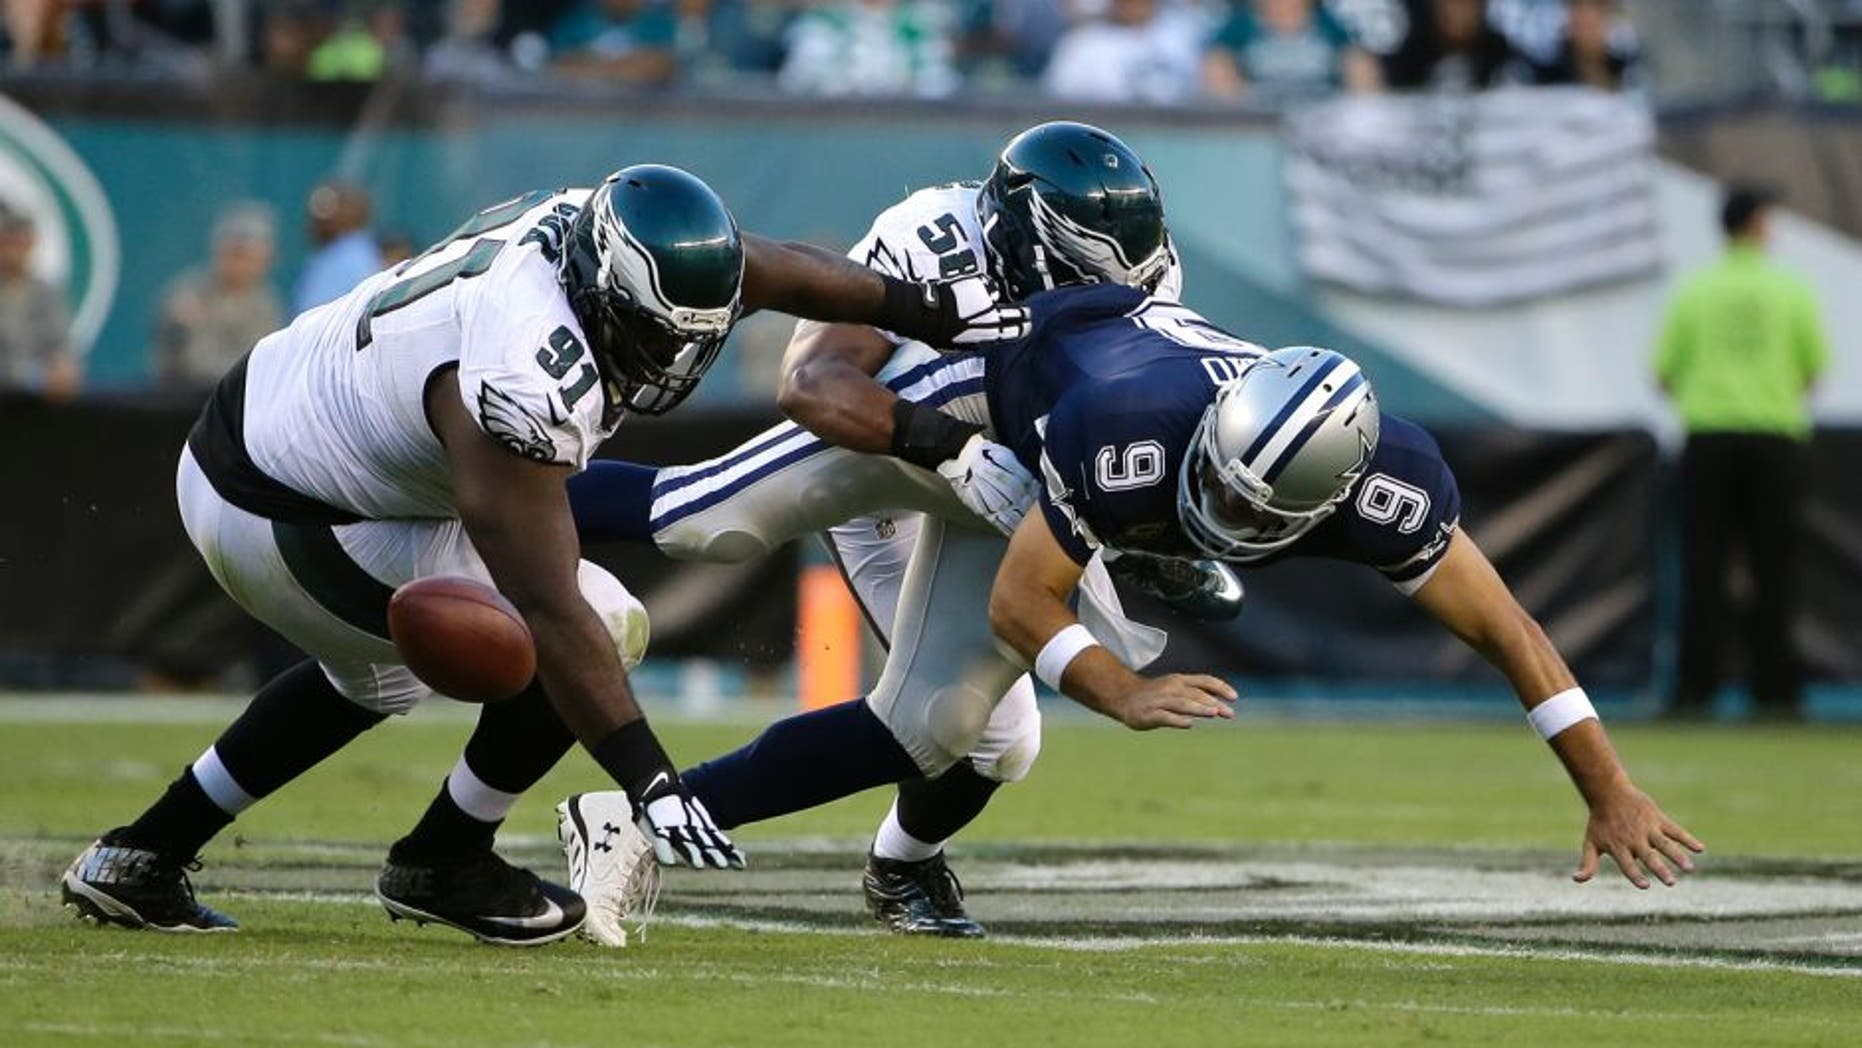 Dallas Cowboys' Tony Romo (9) fumbles the football against Philadelphia Eagles' Fletcher Cox (91) and Jordan Hicks (58) during the second half of an NFL football game, Sunday, Sept. 20, 2015, in Philadelphia. (AP Photo/Matt Rourke)